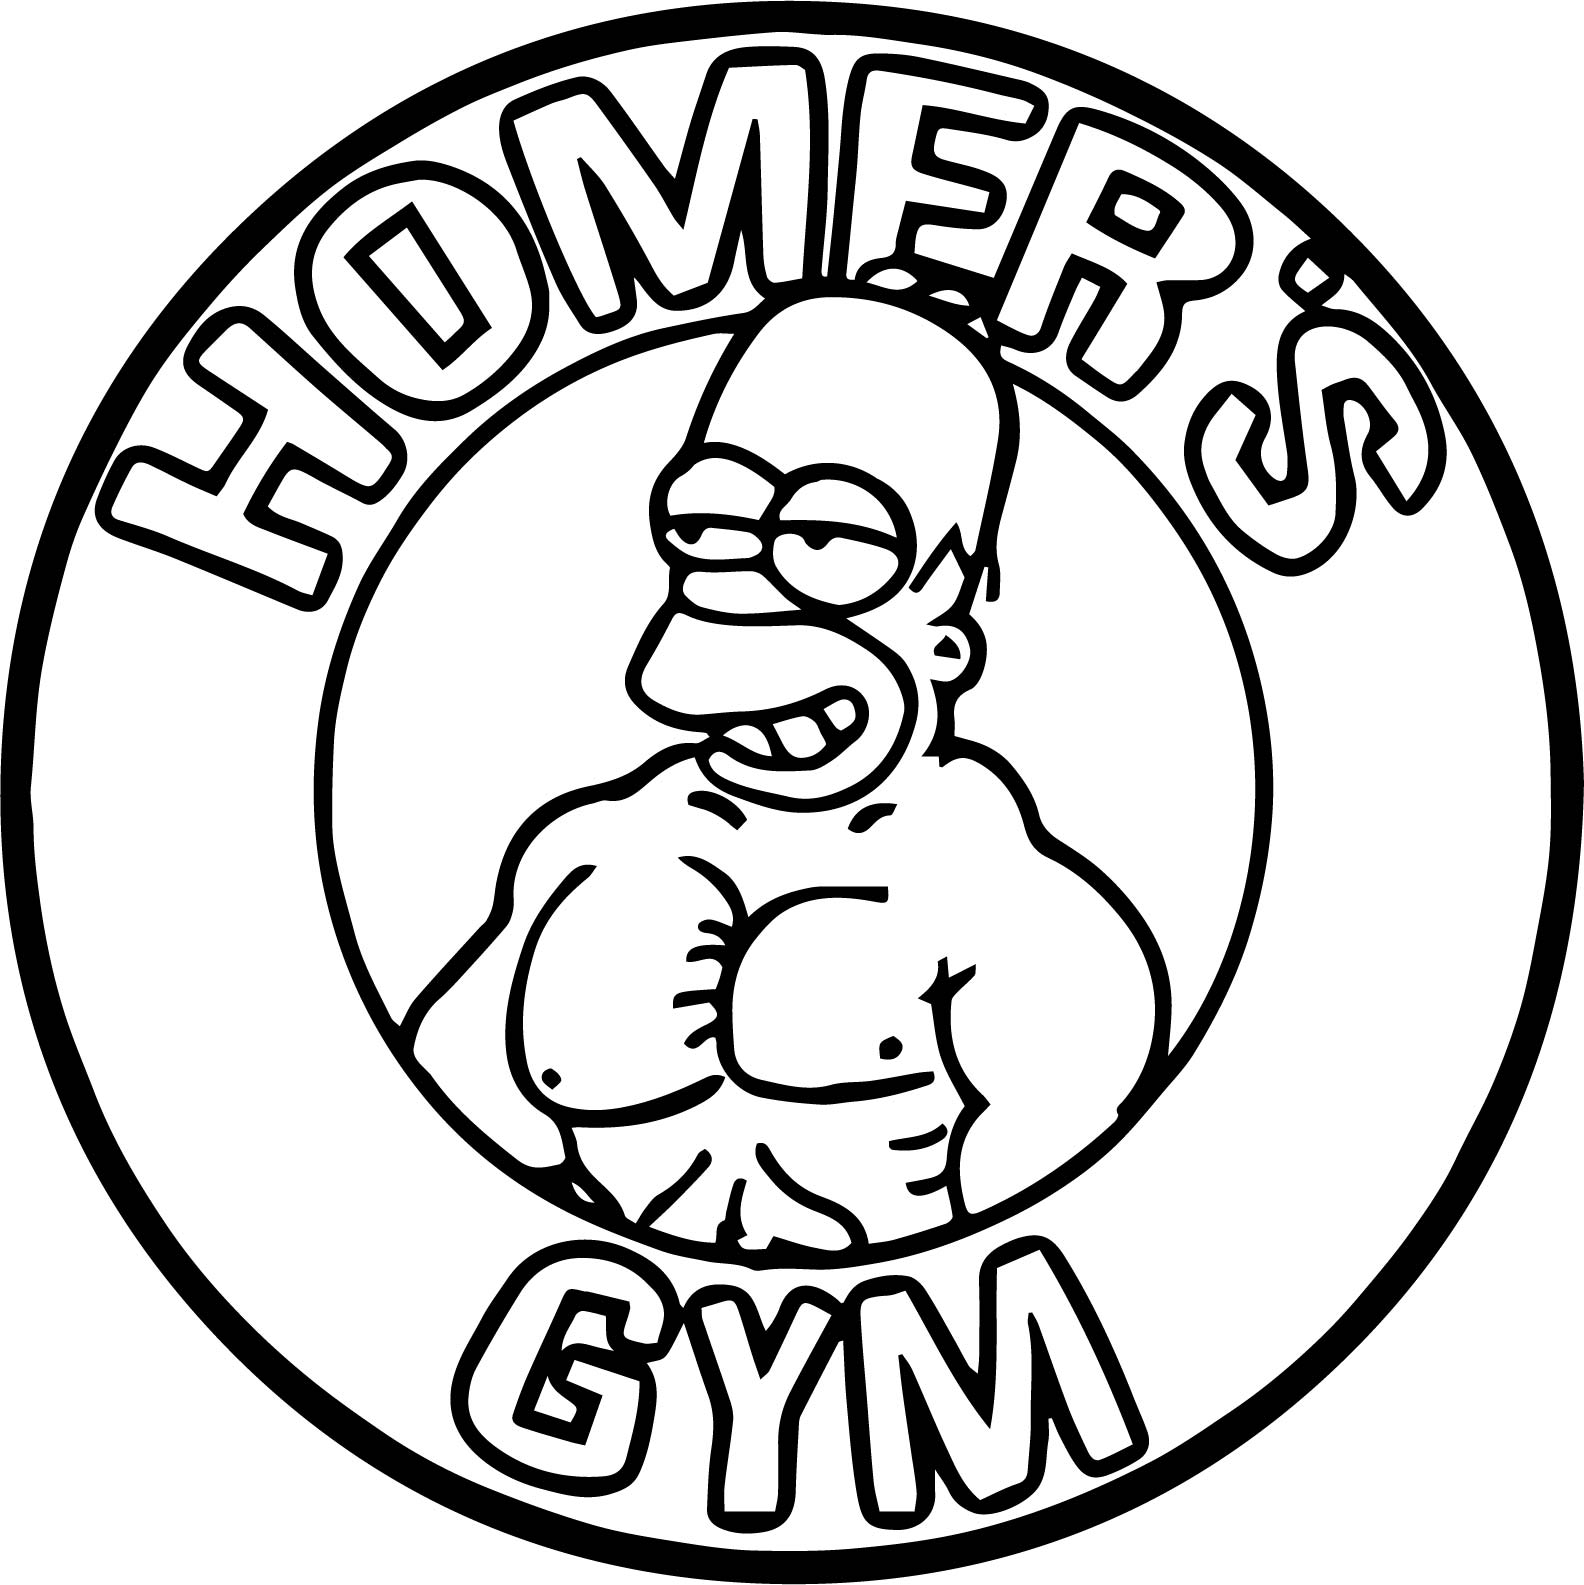 Homers Gym Coloring Page